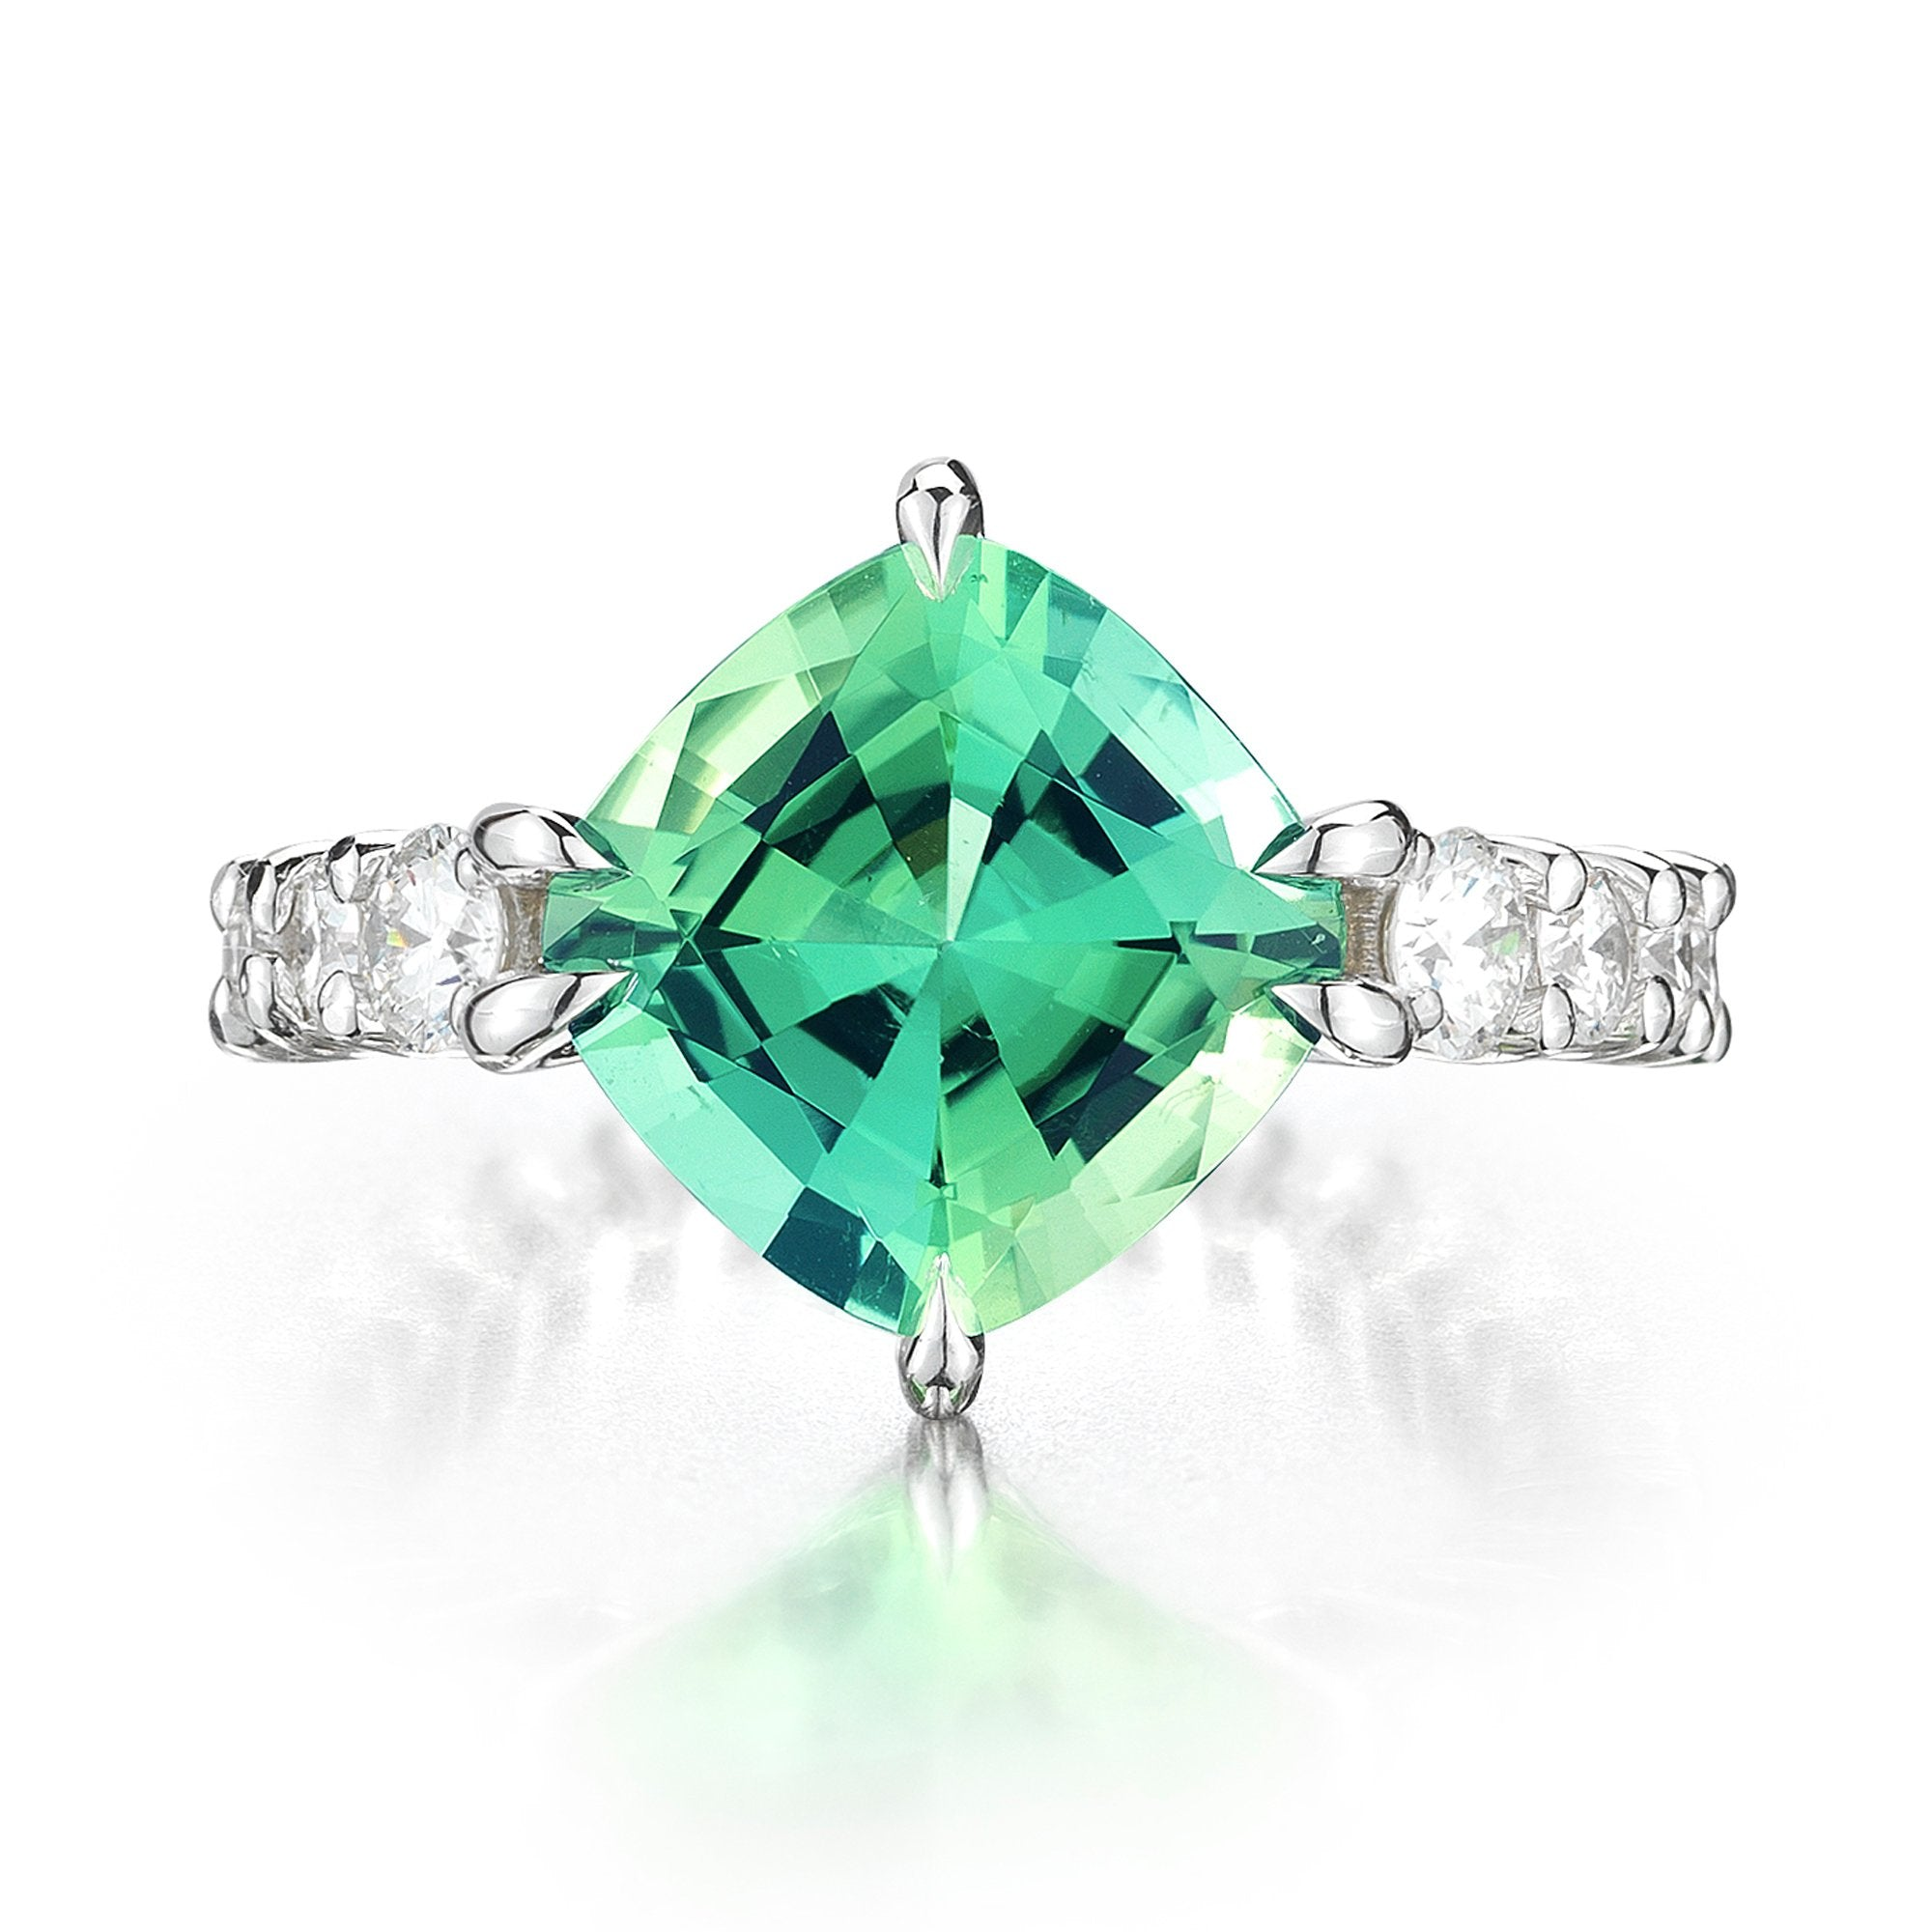 Mint Tourmaline and Diamond 'Eternita' Ring - Paolo Costagli - 1